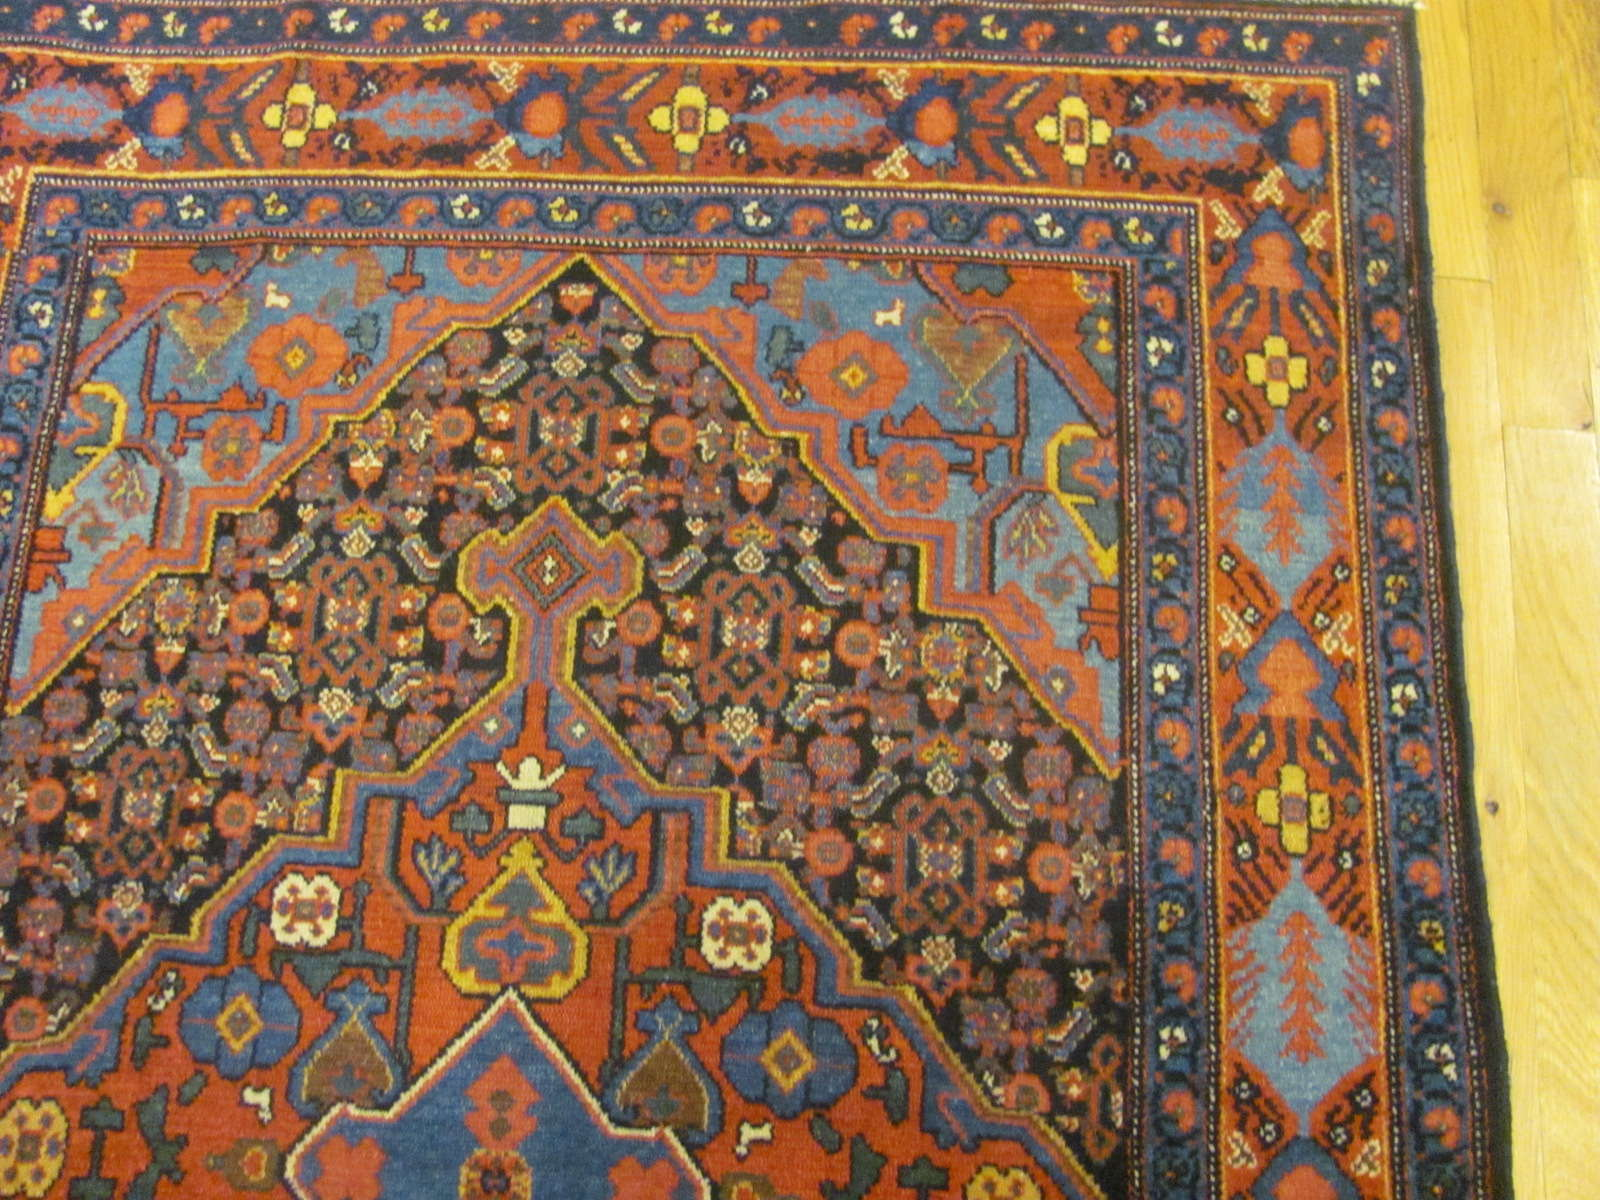 24836 antique persian senneh kurd rug 3,4x4,5-1